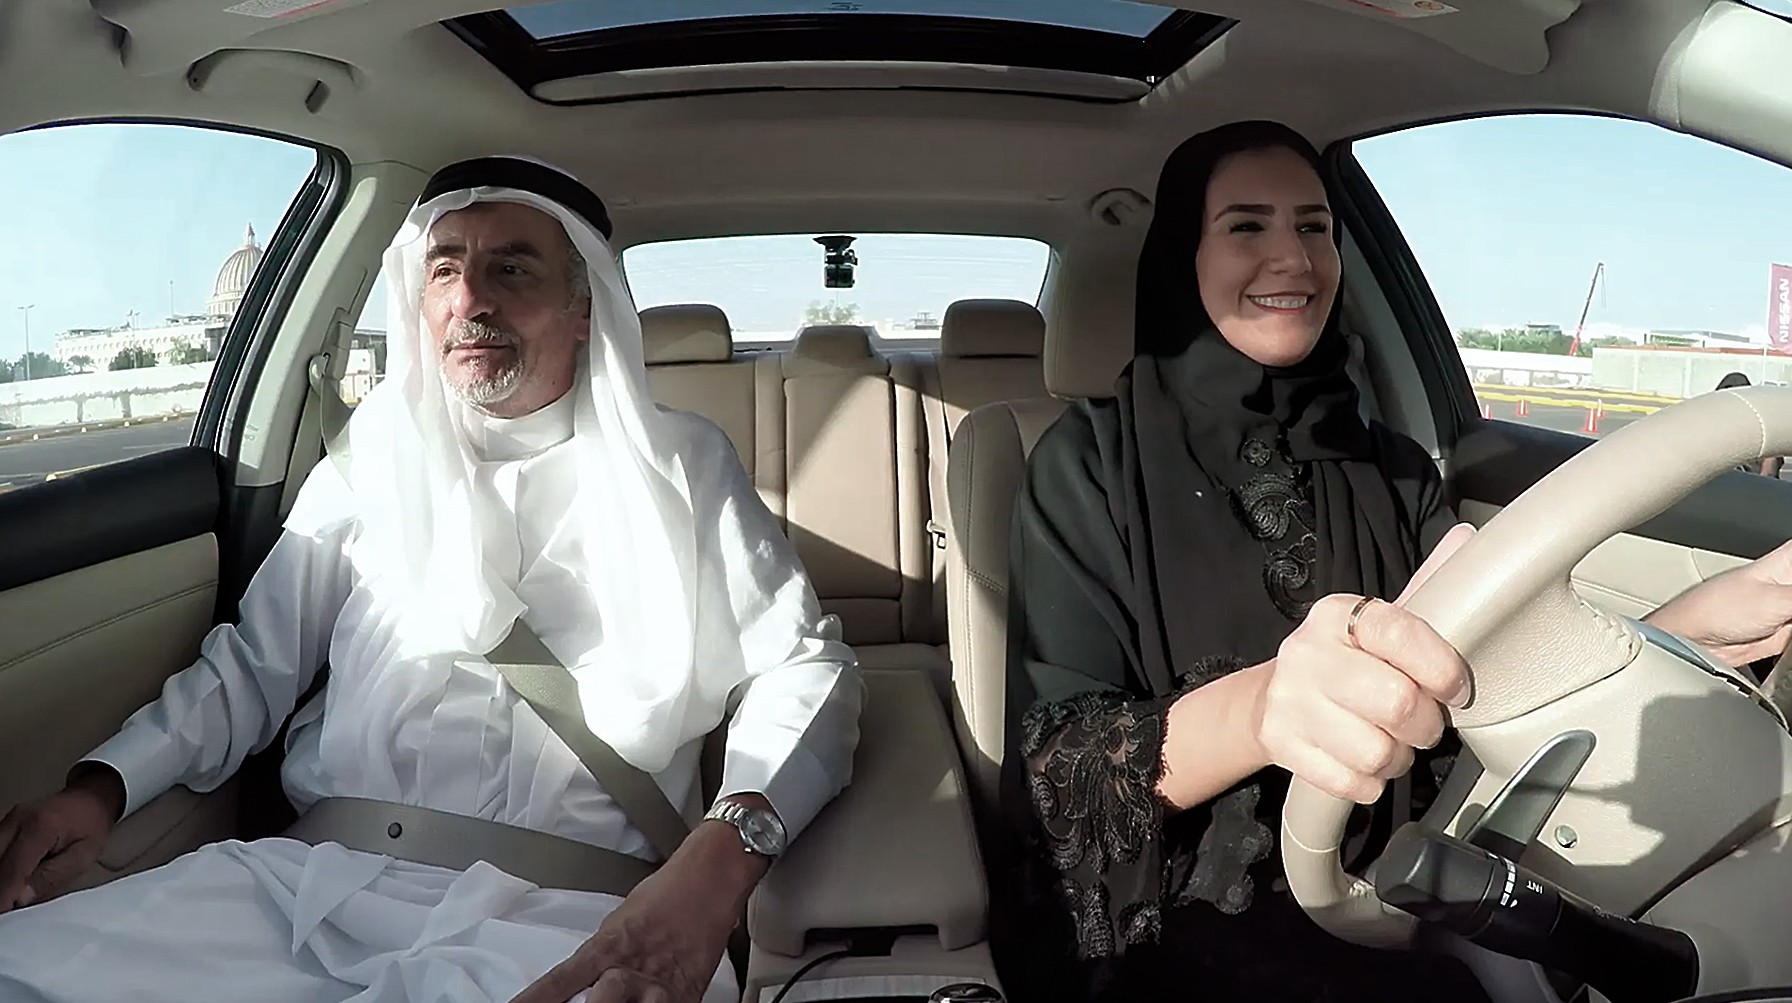 Nissan_KSA Women Driving Arab Motor World 2